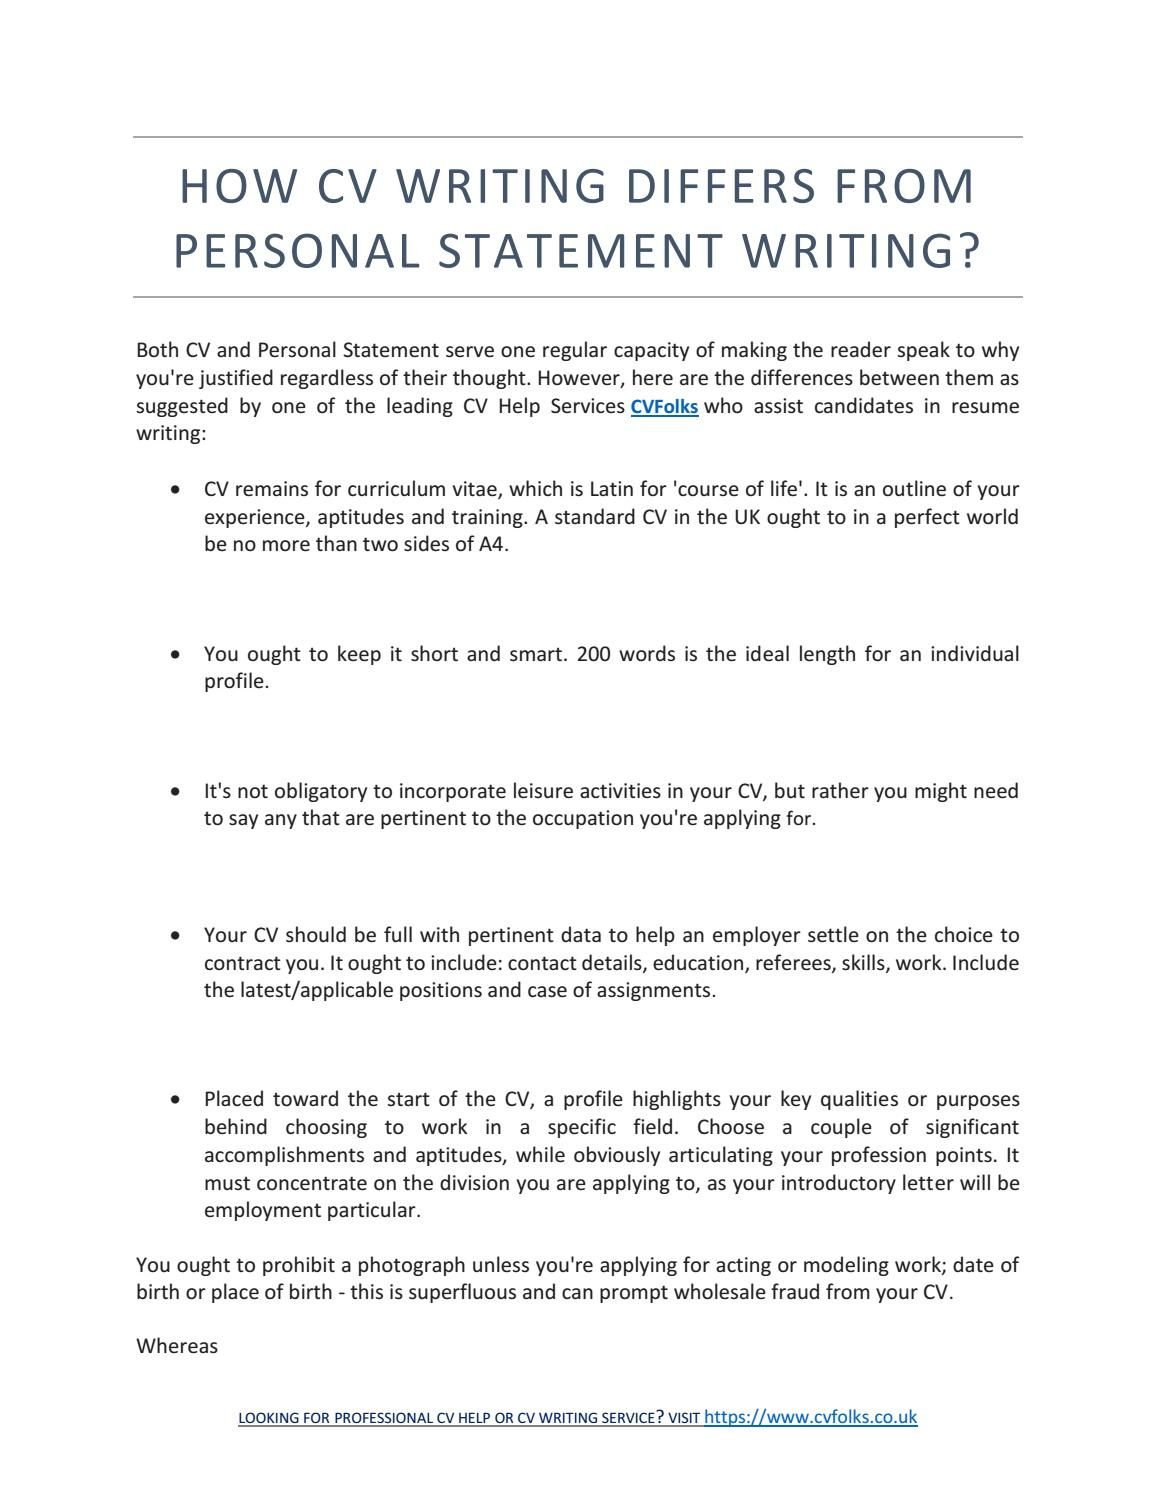 How CV Writing Differs From Personal Statement Writing | Resume ...